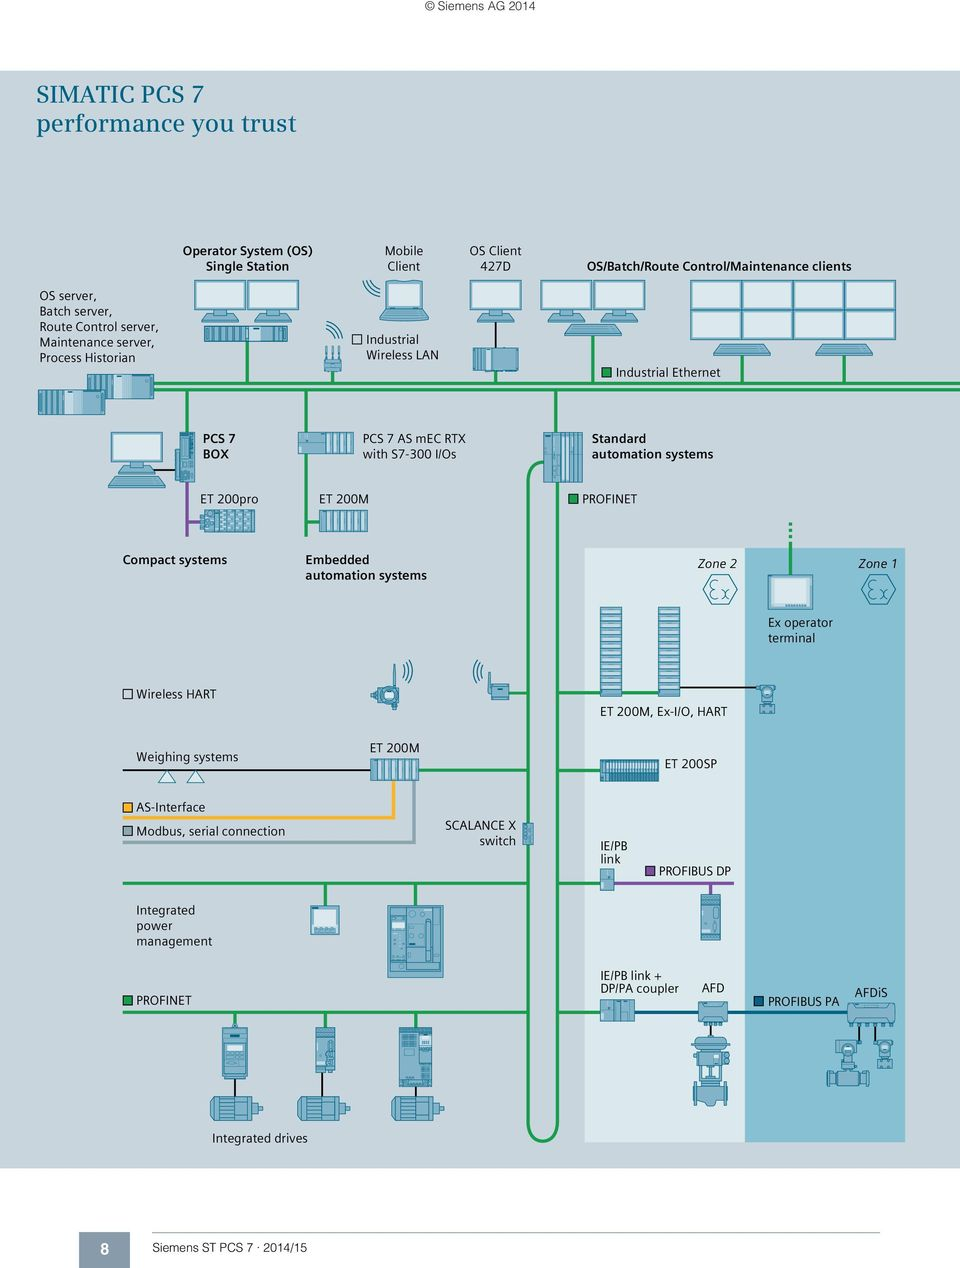 hight resolution of profinet compact systems embedded automation systems zone 2 zone 1 ex operator terminal wireless hart weighing